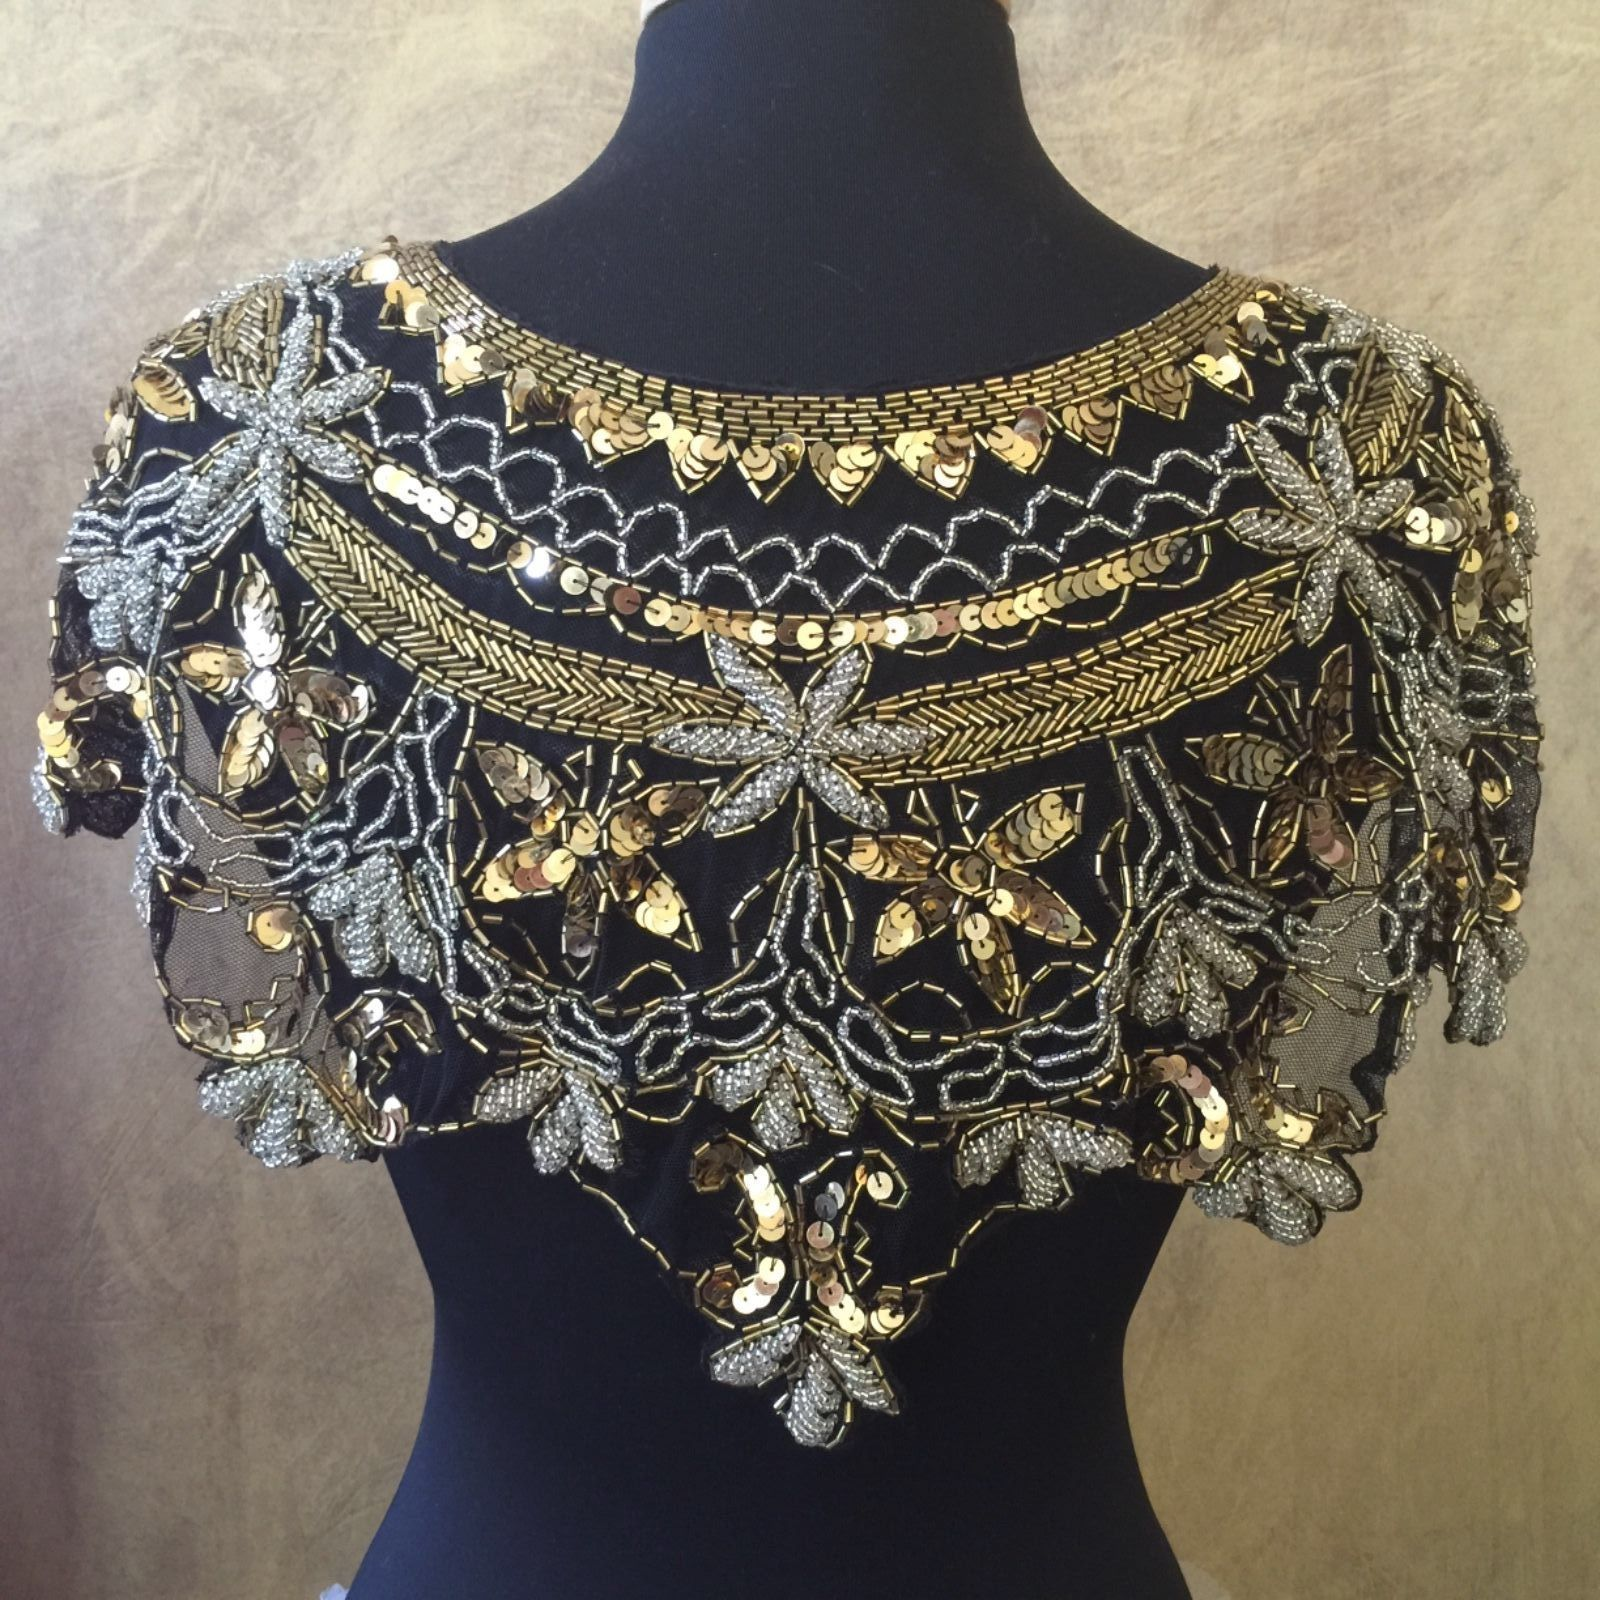 Primary image for Sequin Beaded Lace Hip Wrap Collar Shoulder Shrug Shawl Applique Silver & Gold